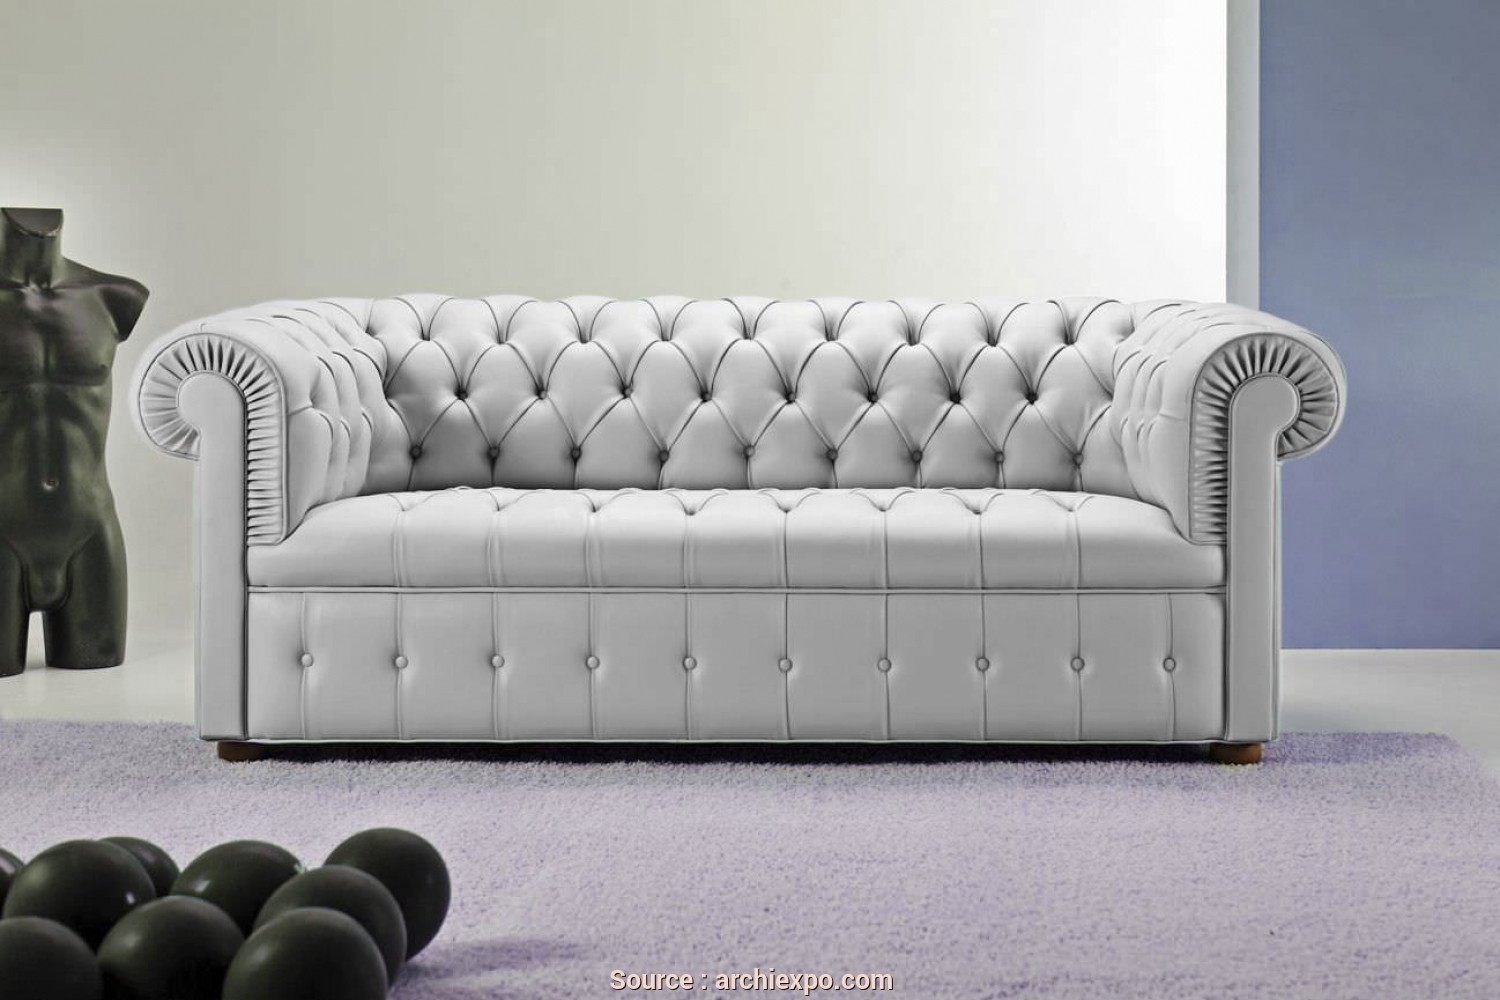 Incredibile 6 Divano Chesterfield Capitonne